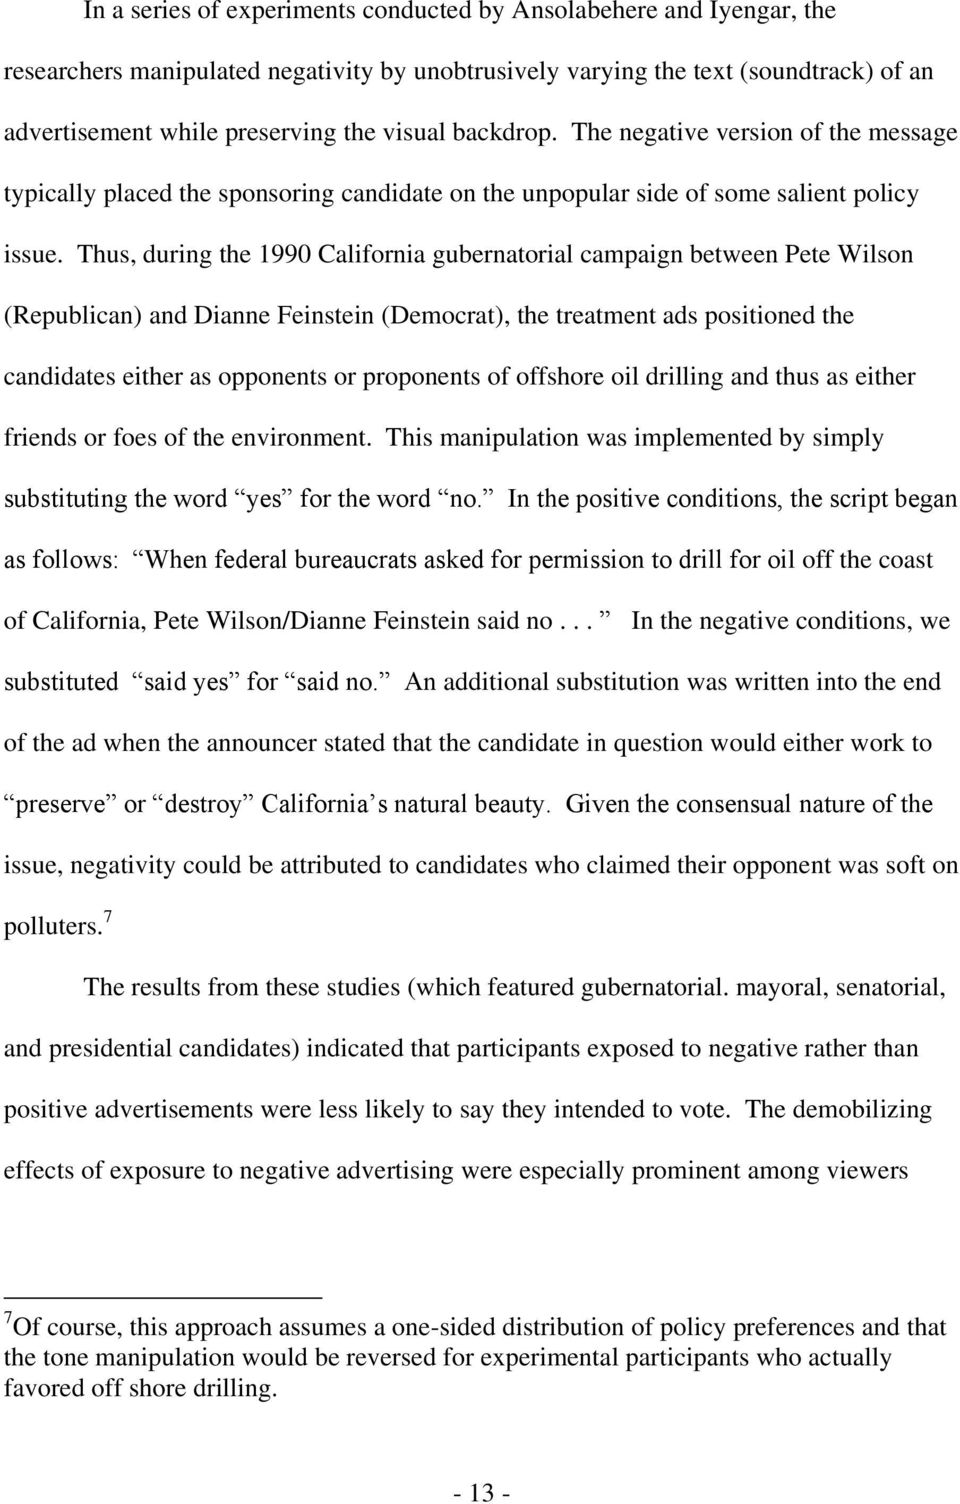 Thus, during the 1990 California gubernatorial campaign between Pete Wilson (Republican) and Dianne Feinstein (Democrat), the treatment ads positioned the candidates either as opponents or proponents